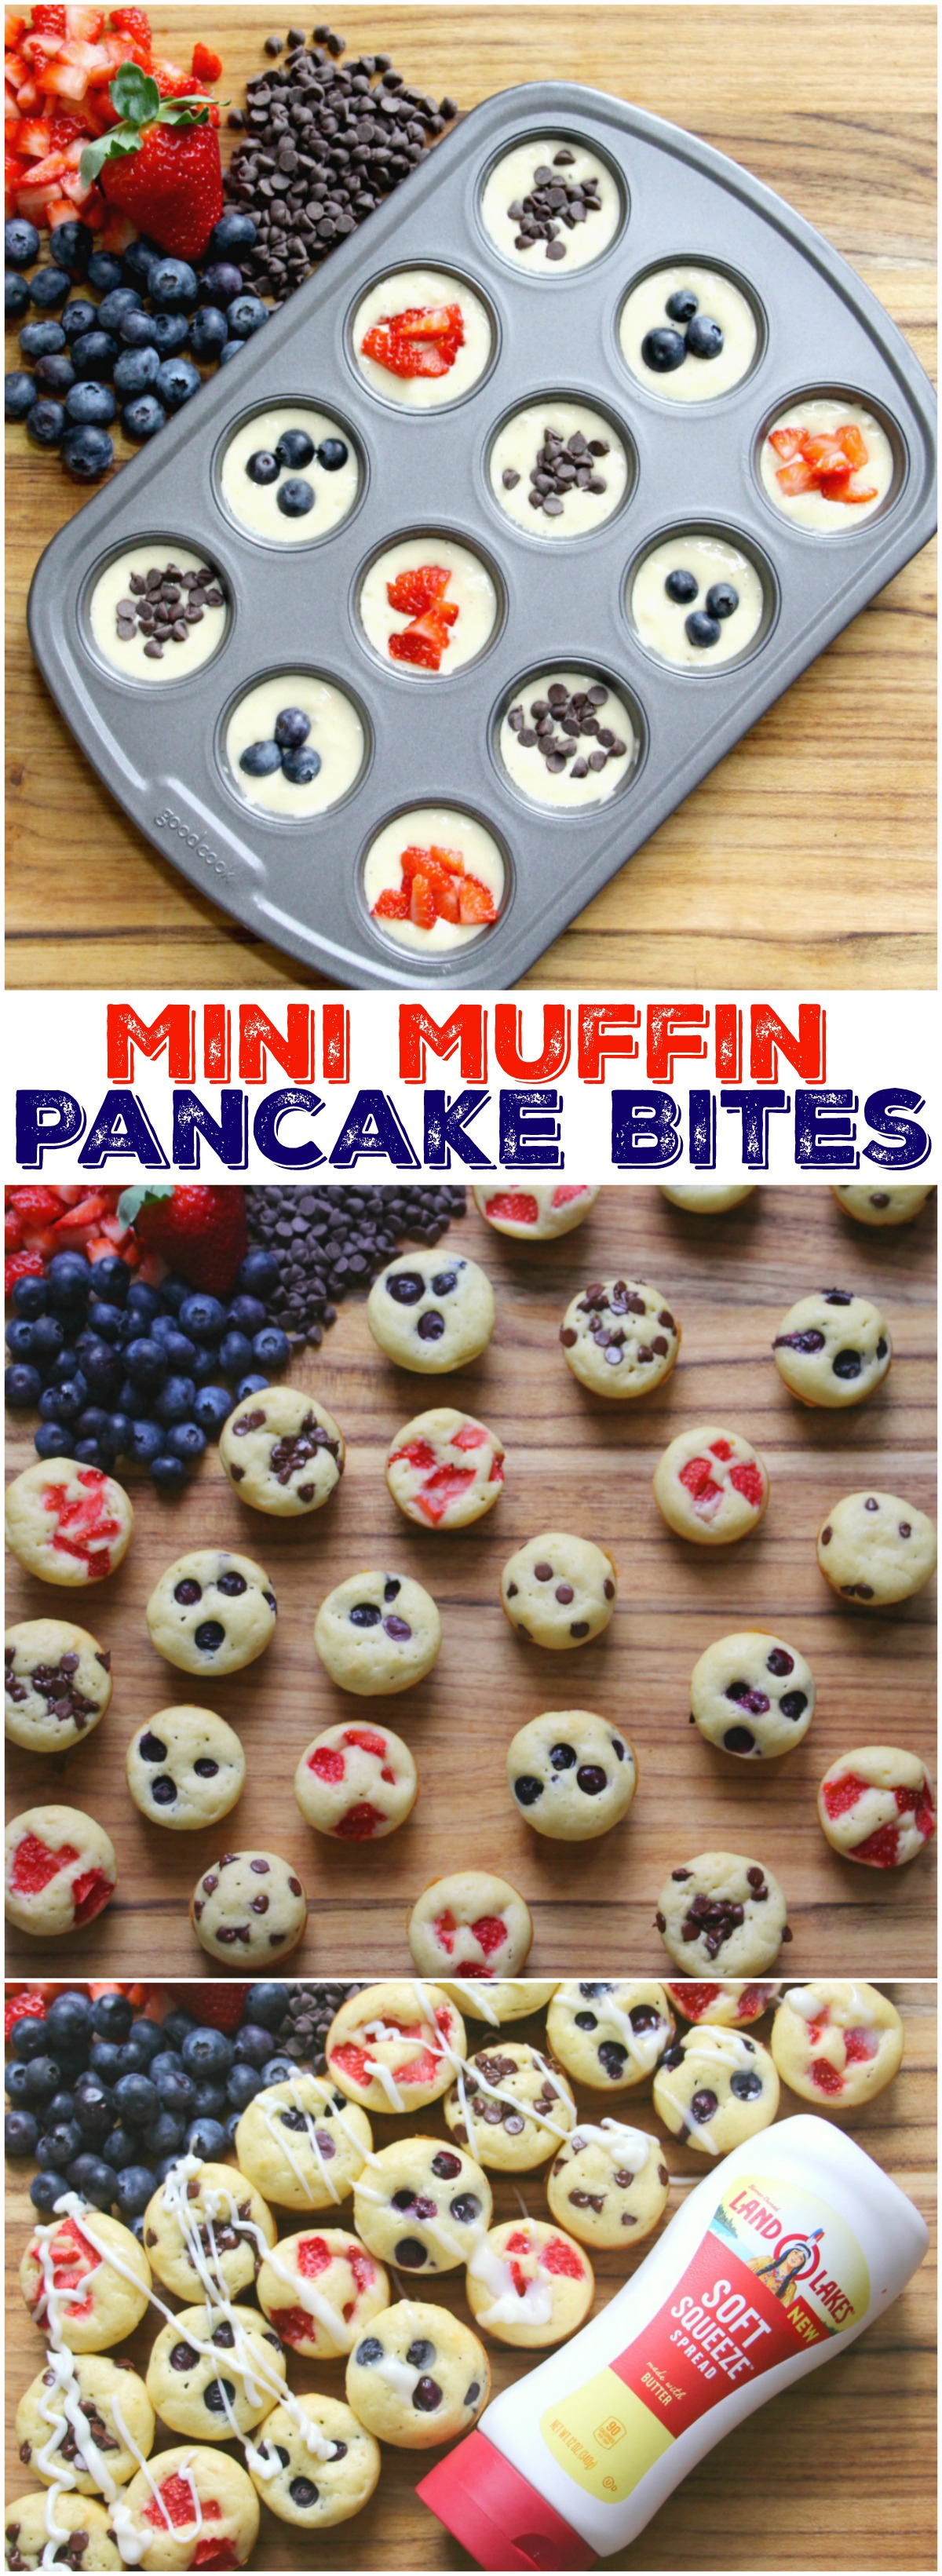 Mini Muffin Pancake Bites